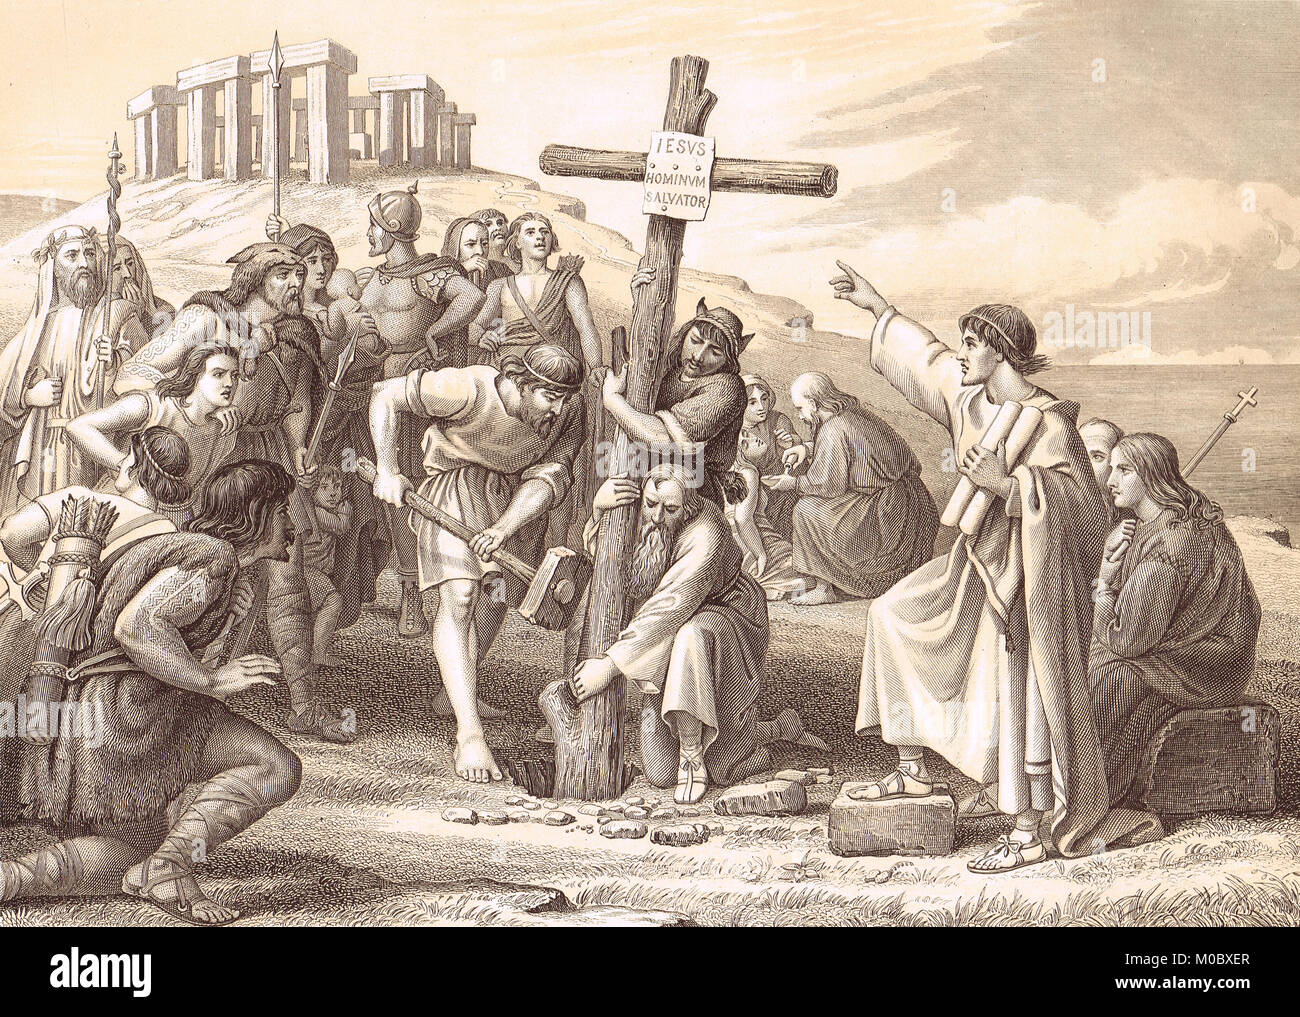 The first preaching of Christianity in Britain, 6th century - Stock Image